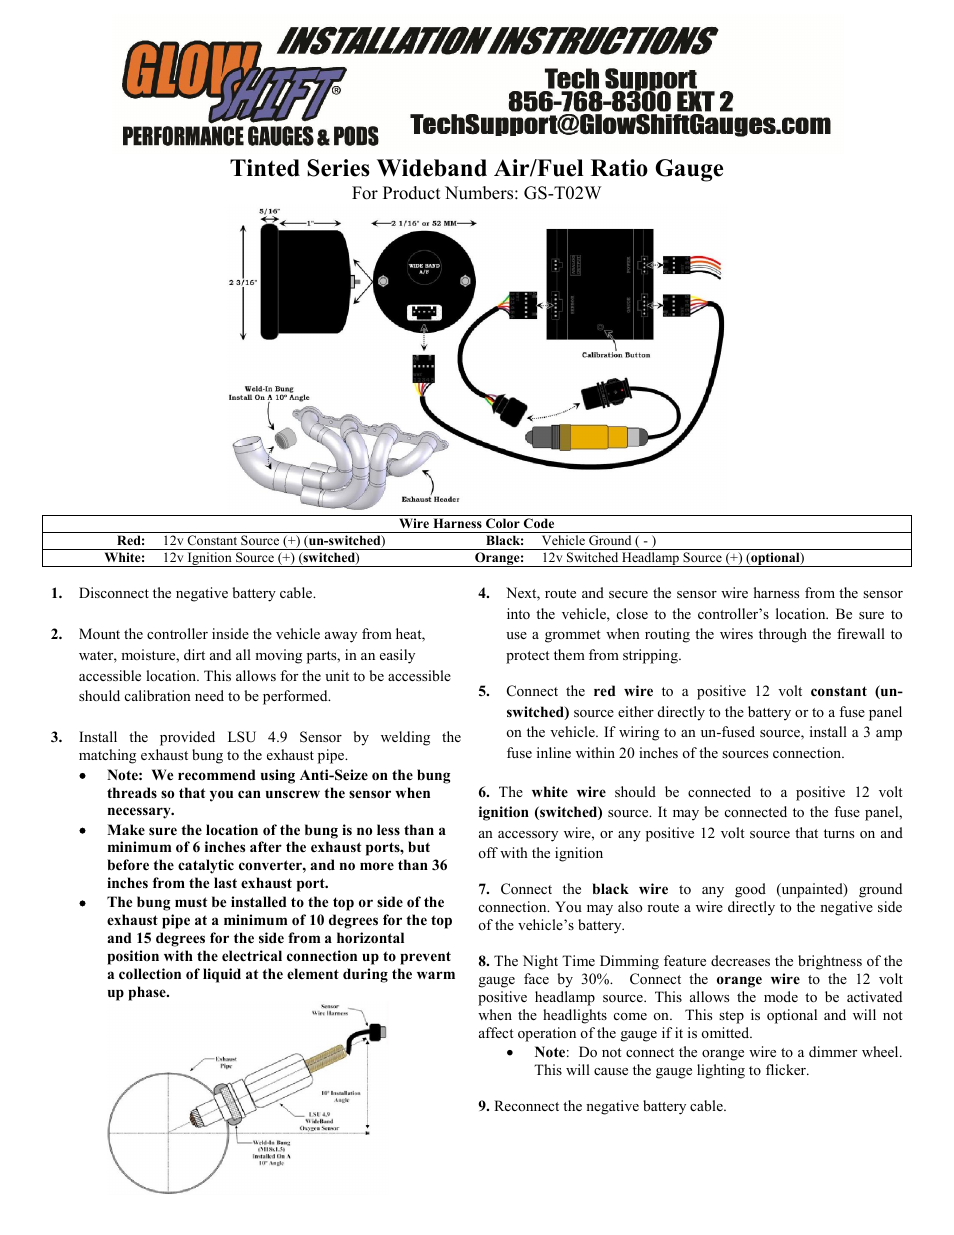 Glowshift Wideband Air Fuel Ratio Gauge W Datalogging Output User Manual 3 Pages